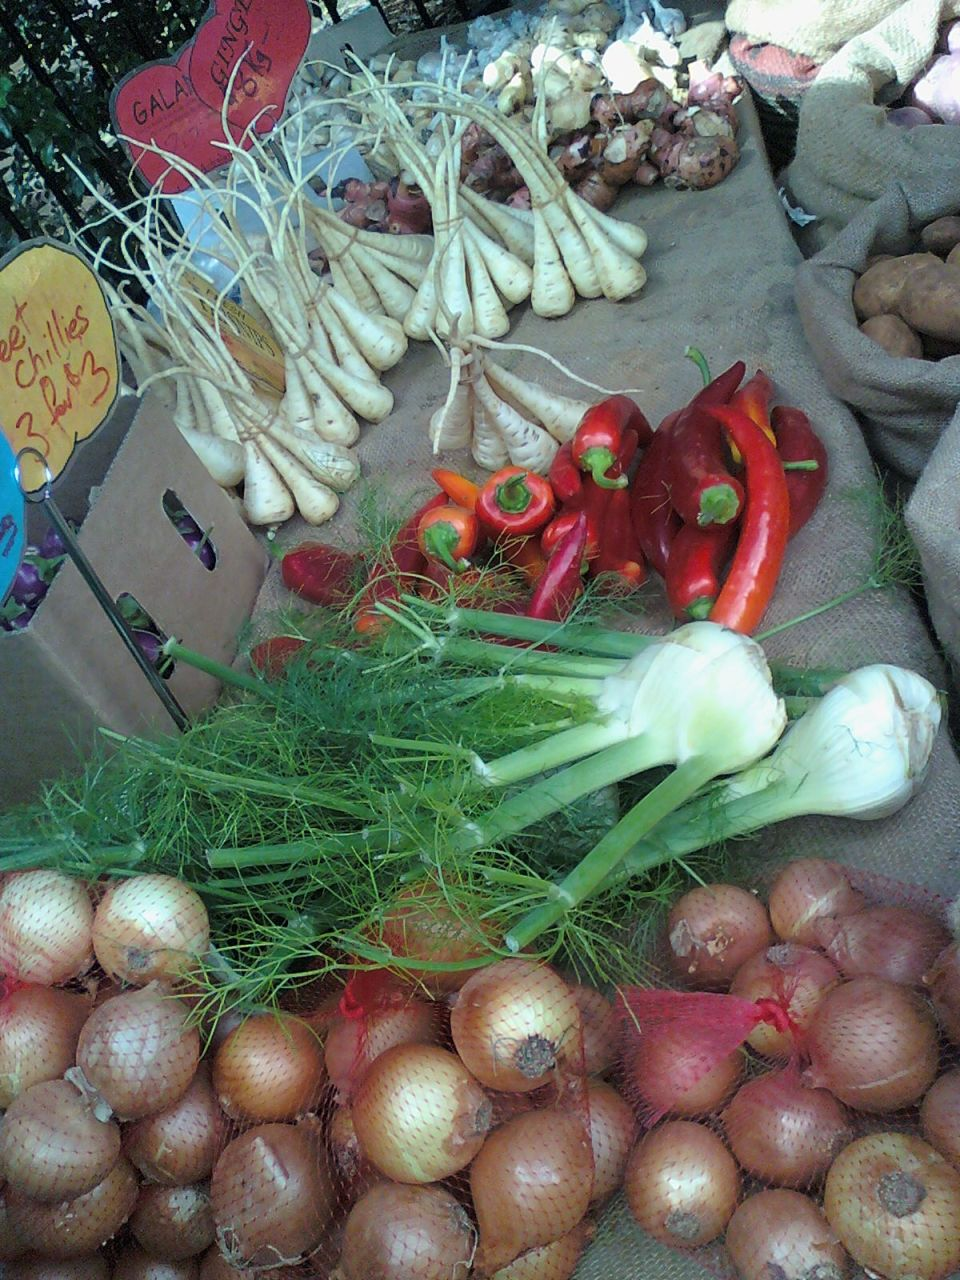 just one of the many produce stalls